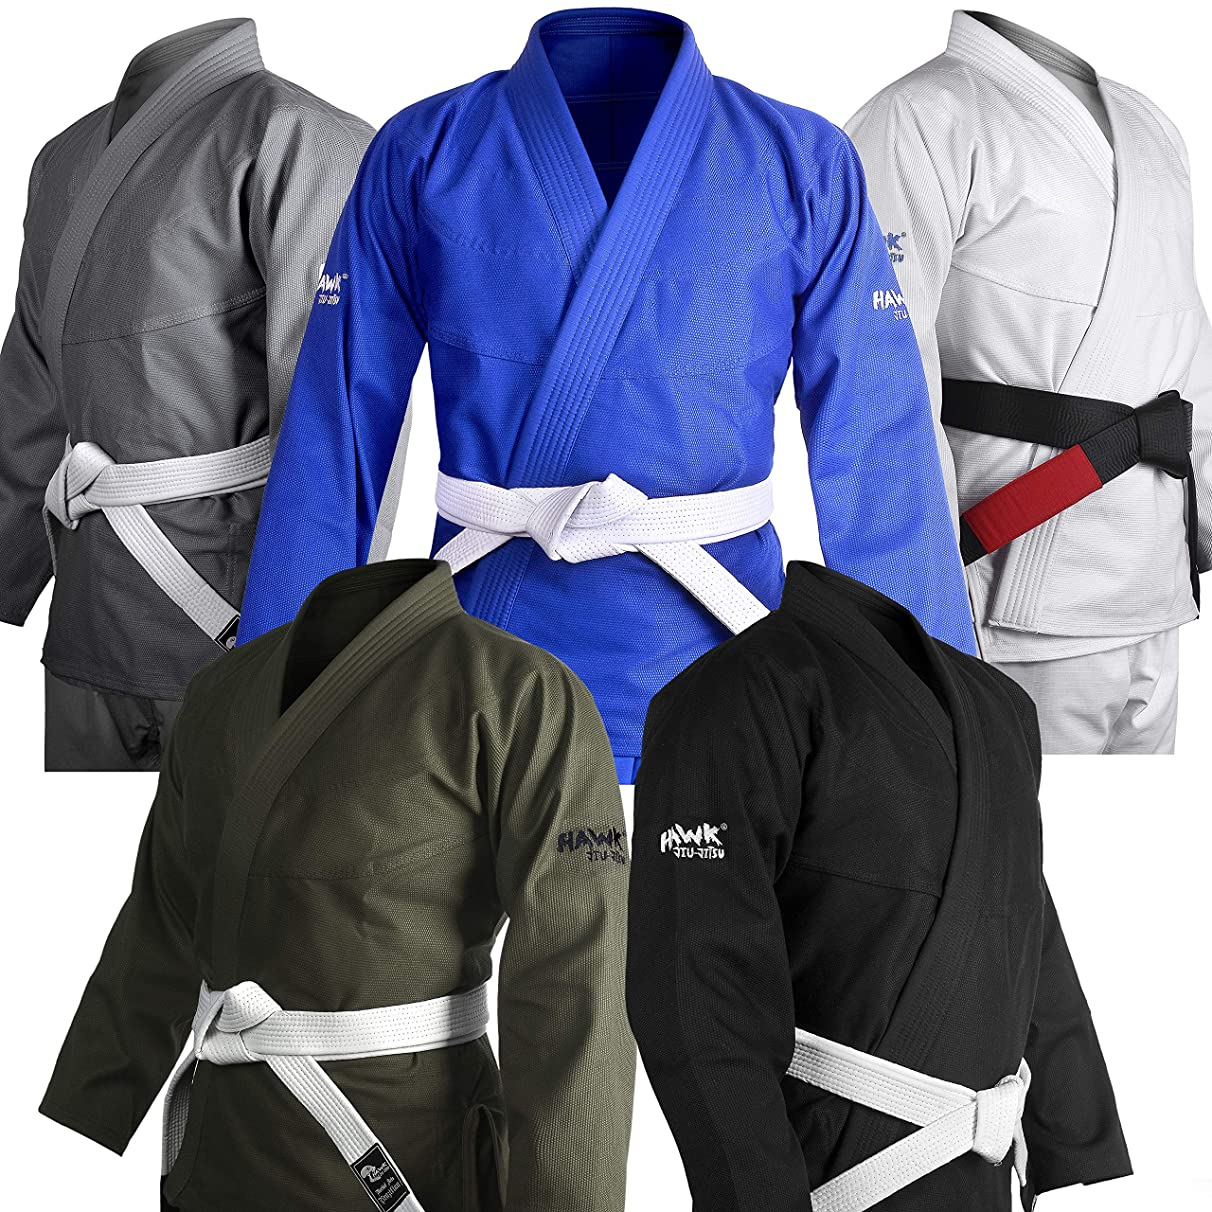 Brazilian Jiu Jitsu Gi BJJ Gi for Men & Women Grappling gi Uniform Kimonos Ultra Light, Preshrunk, Free White Belt!!!